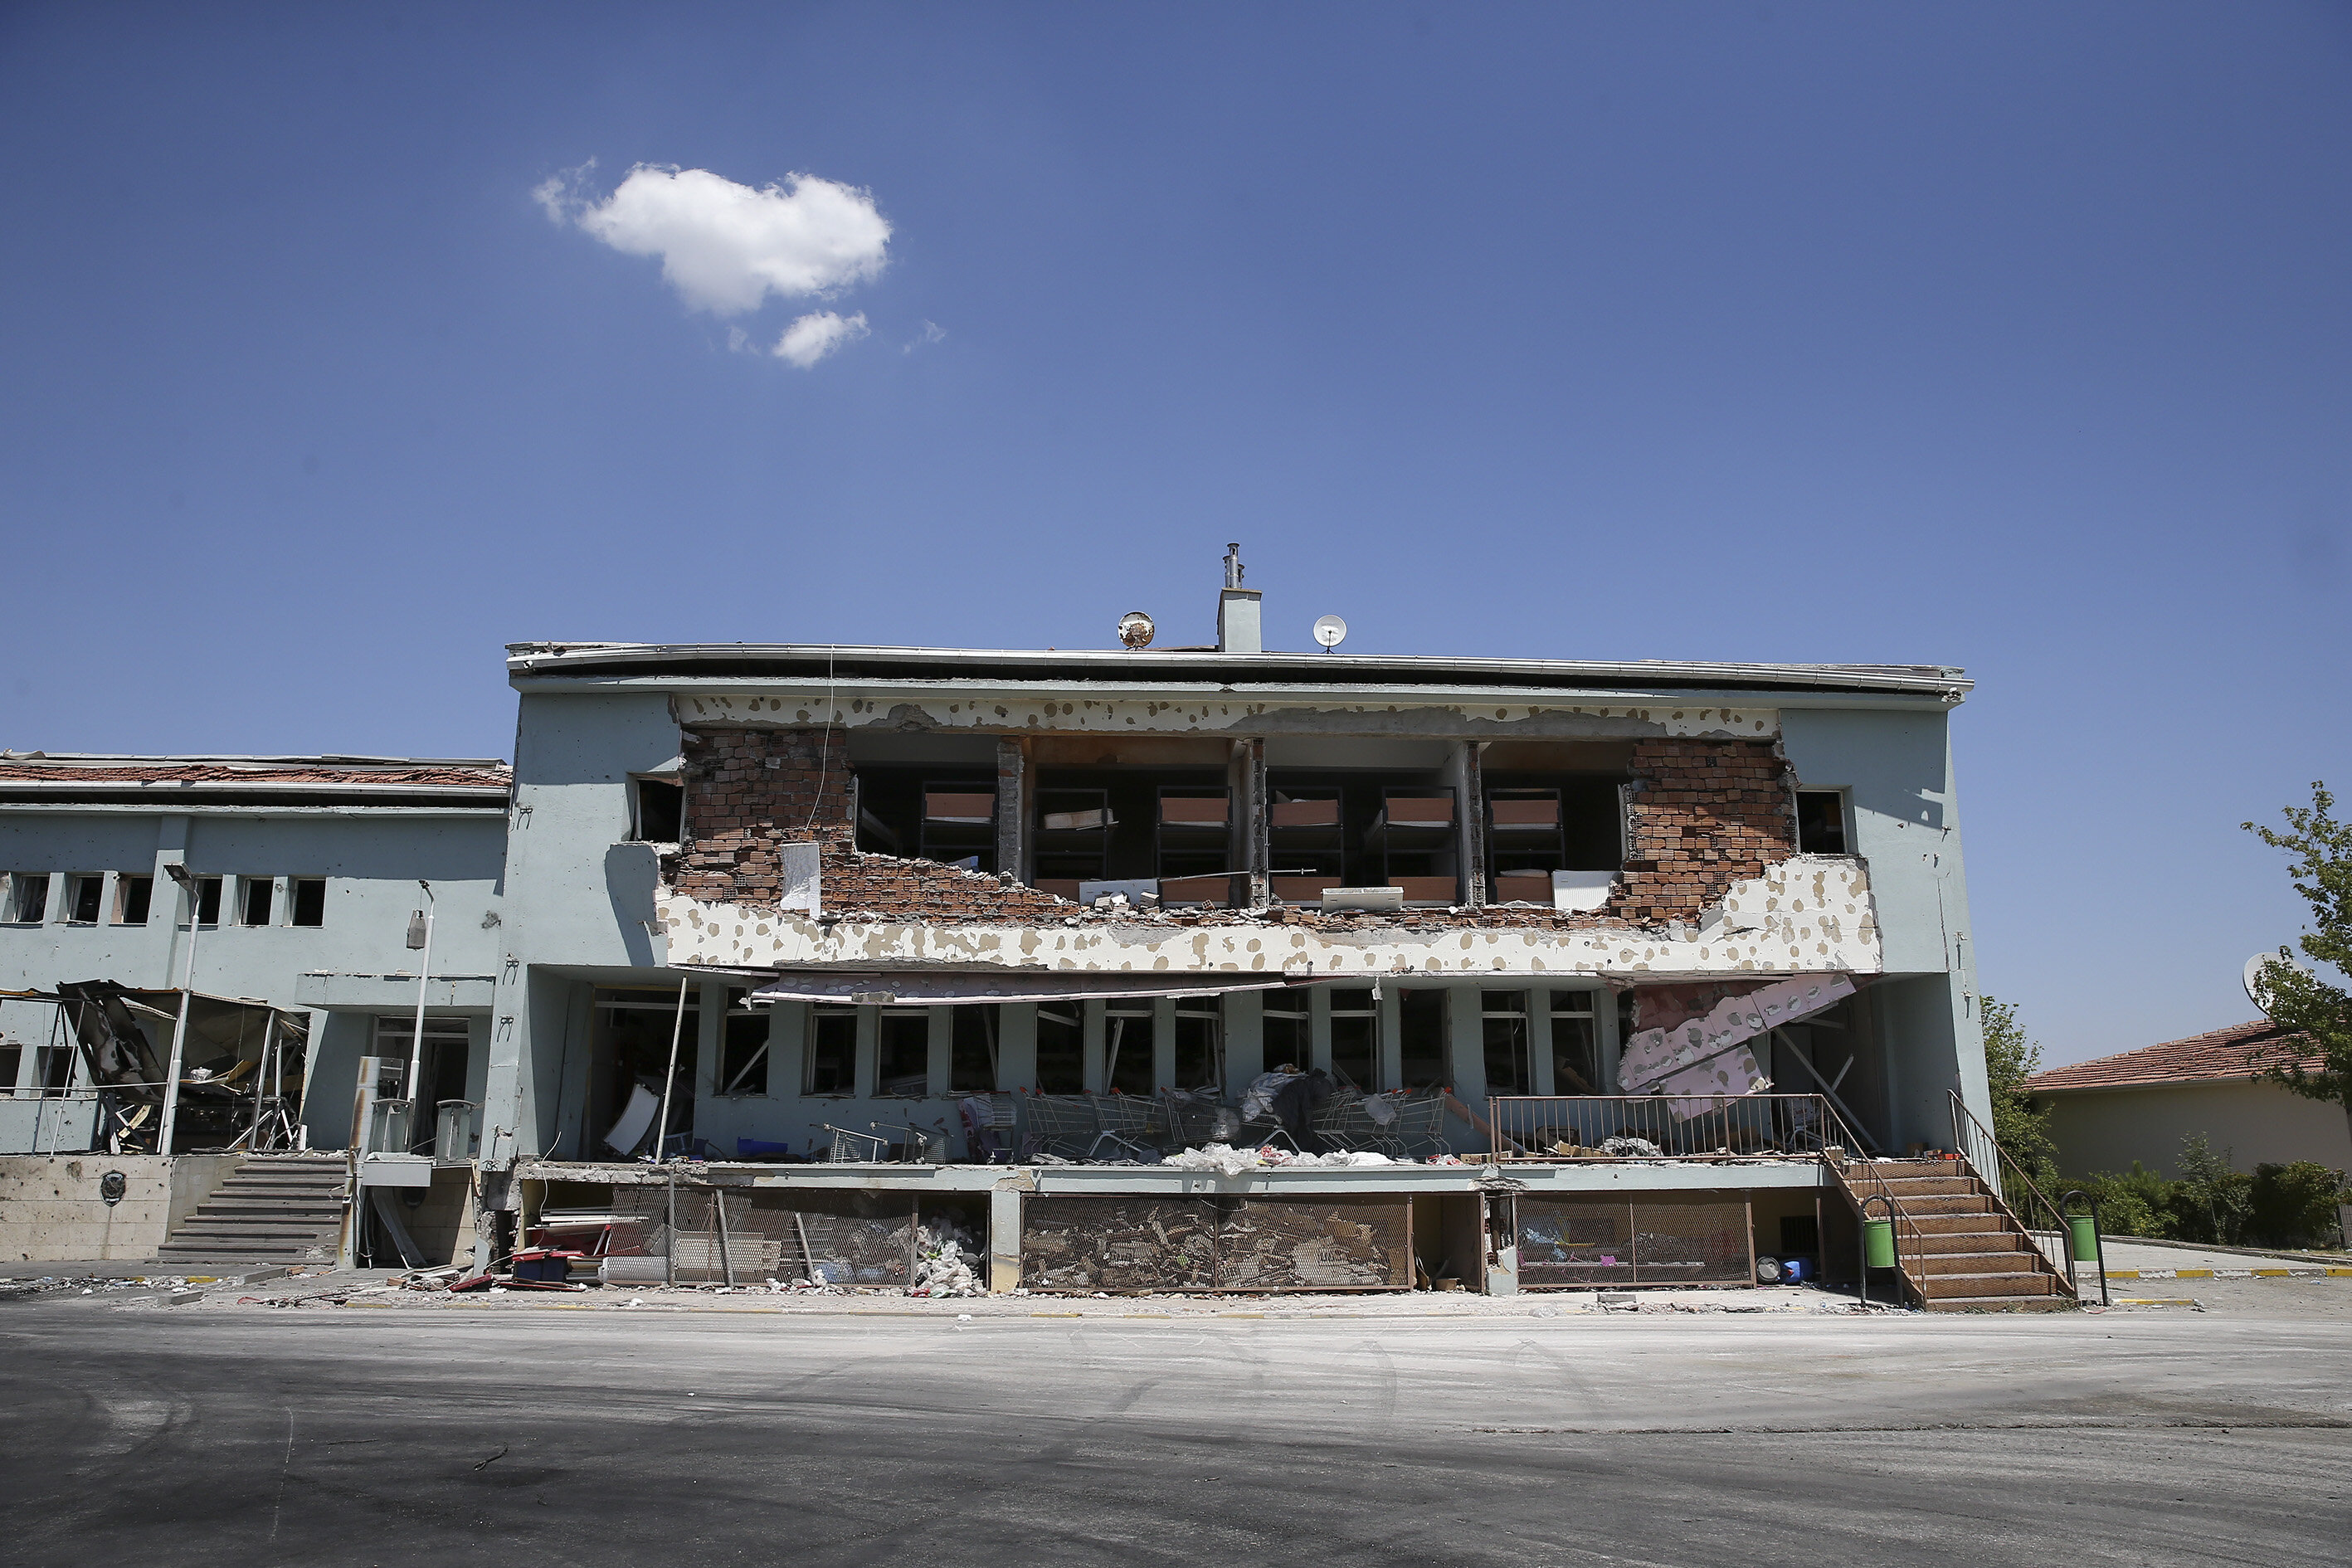 The damage to the Gölbaşı Special Forces Education Center was unveiled with the first light of day.